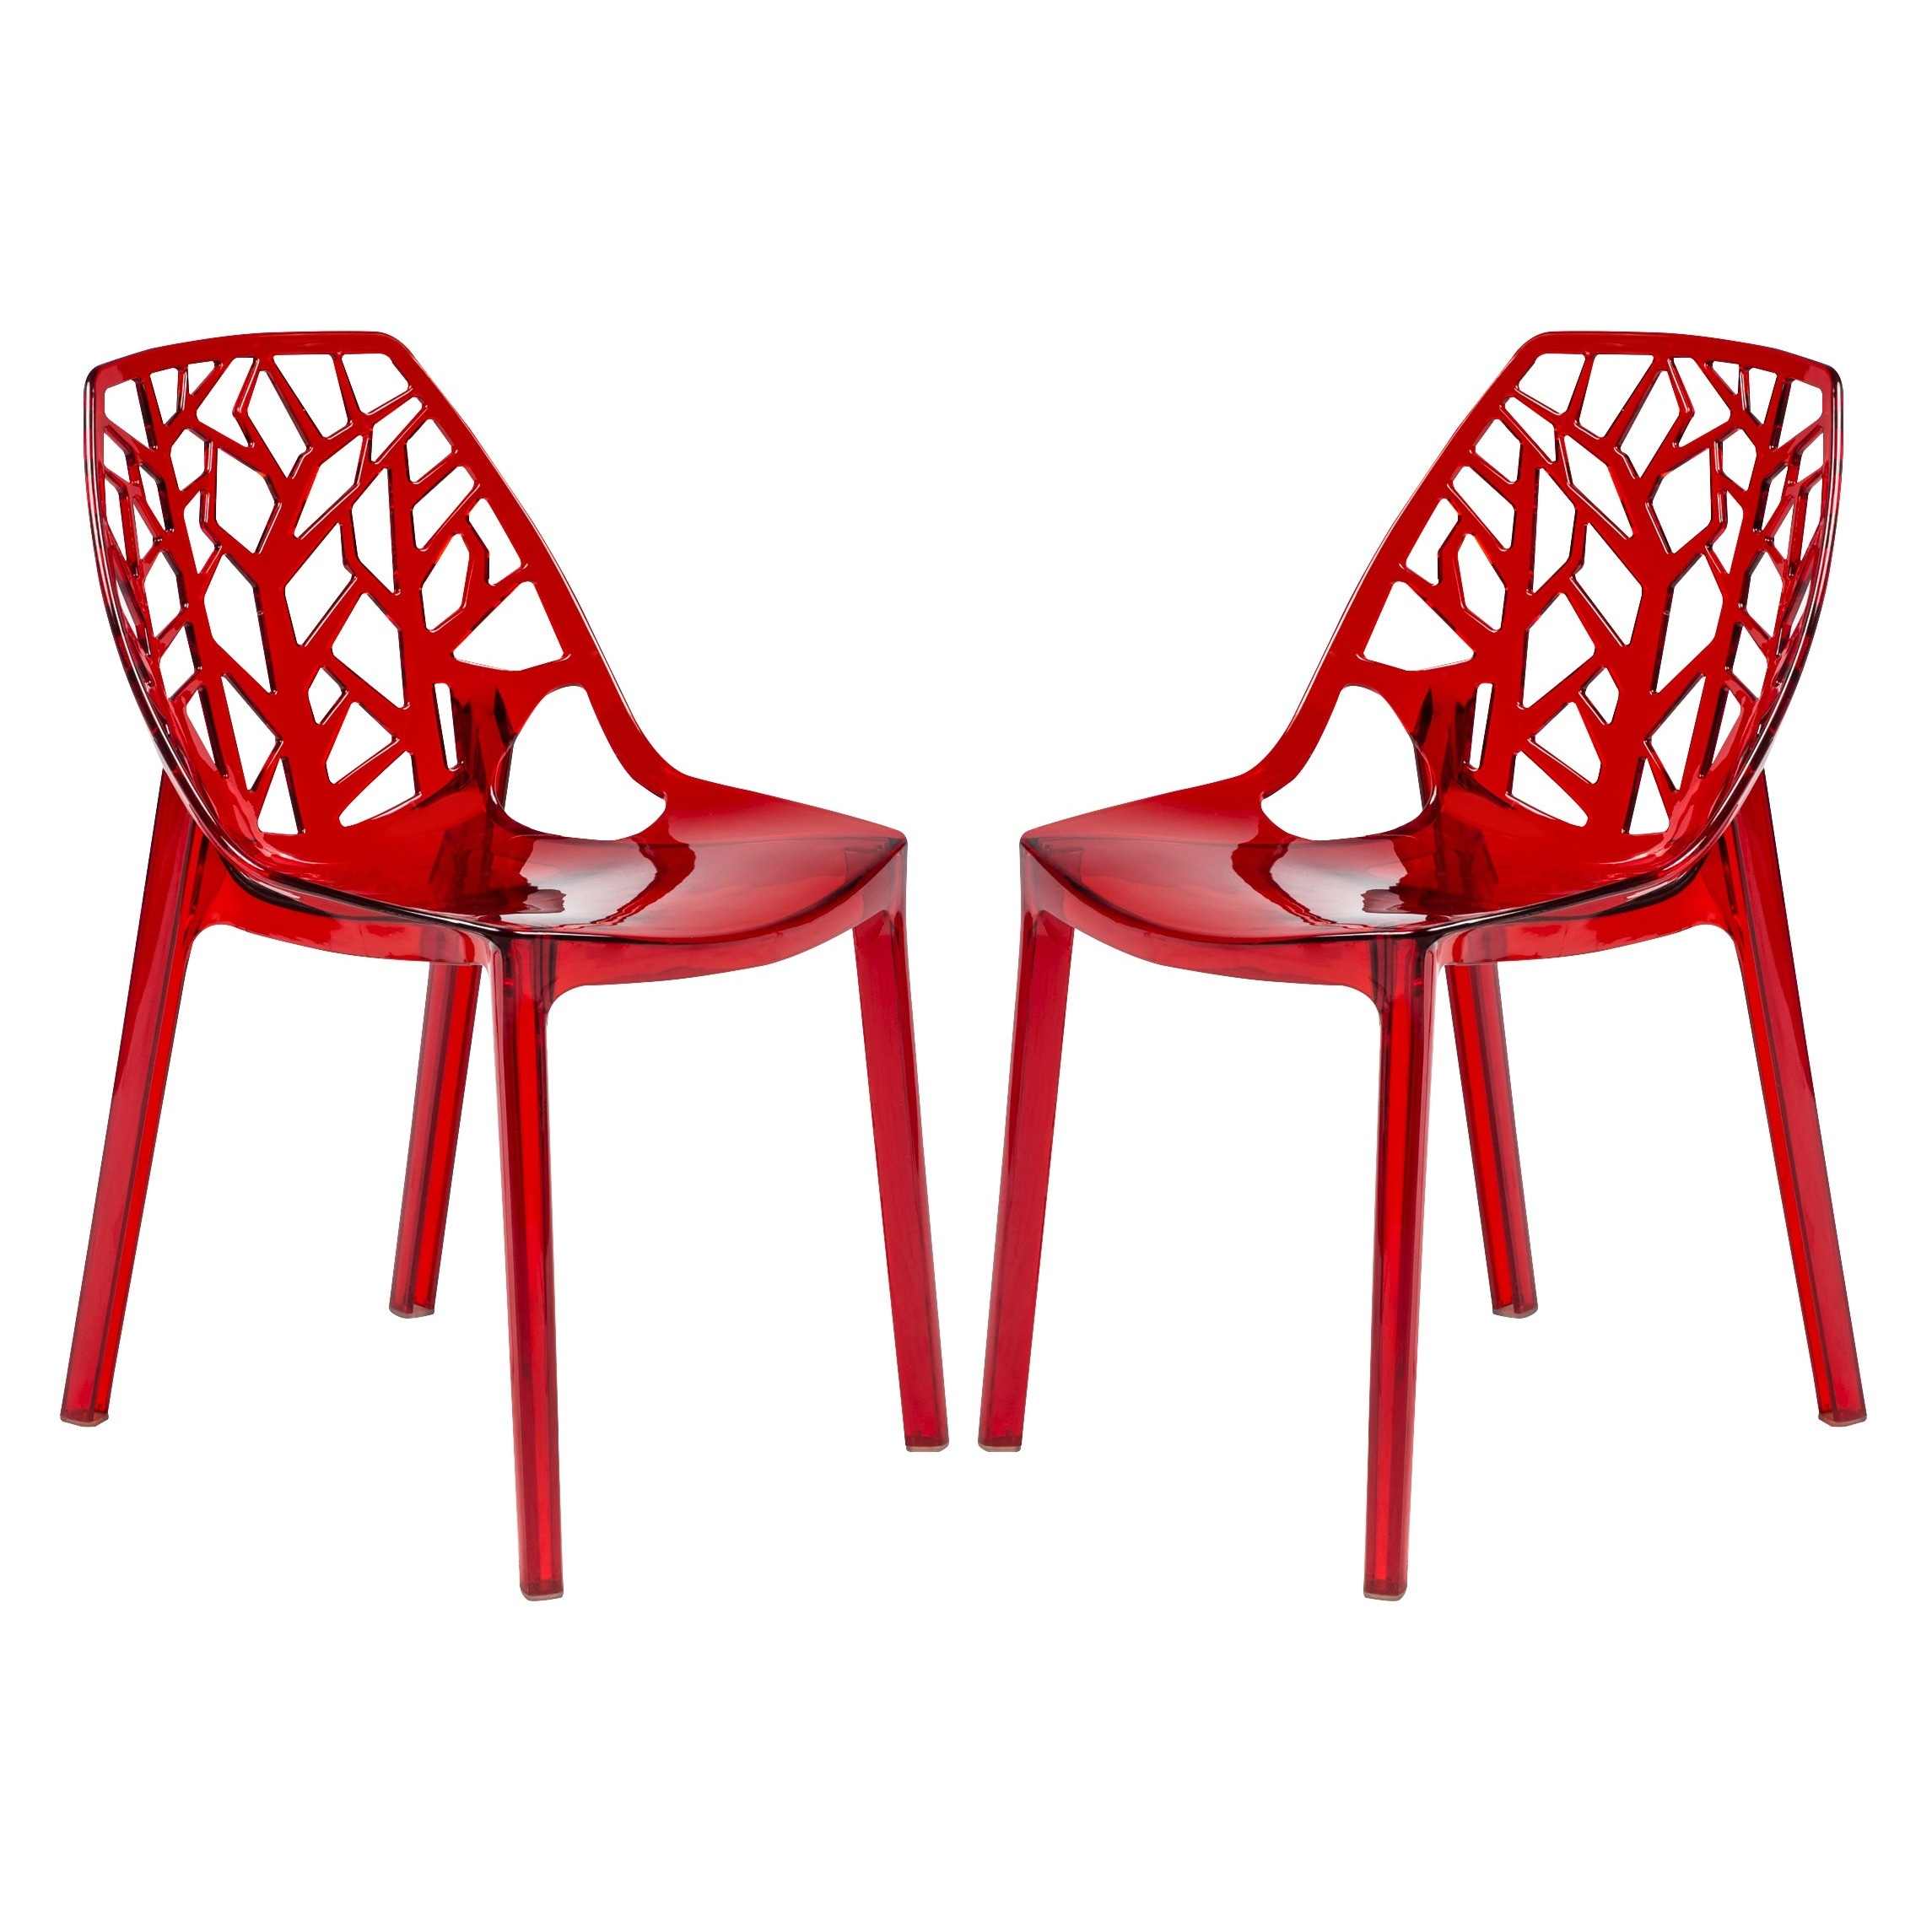 Leisuremod Modern Flora Red Cut Out Plastic Dining Chair Set Of 2 Free Shipping Today 8930617